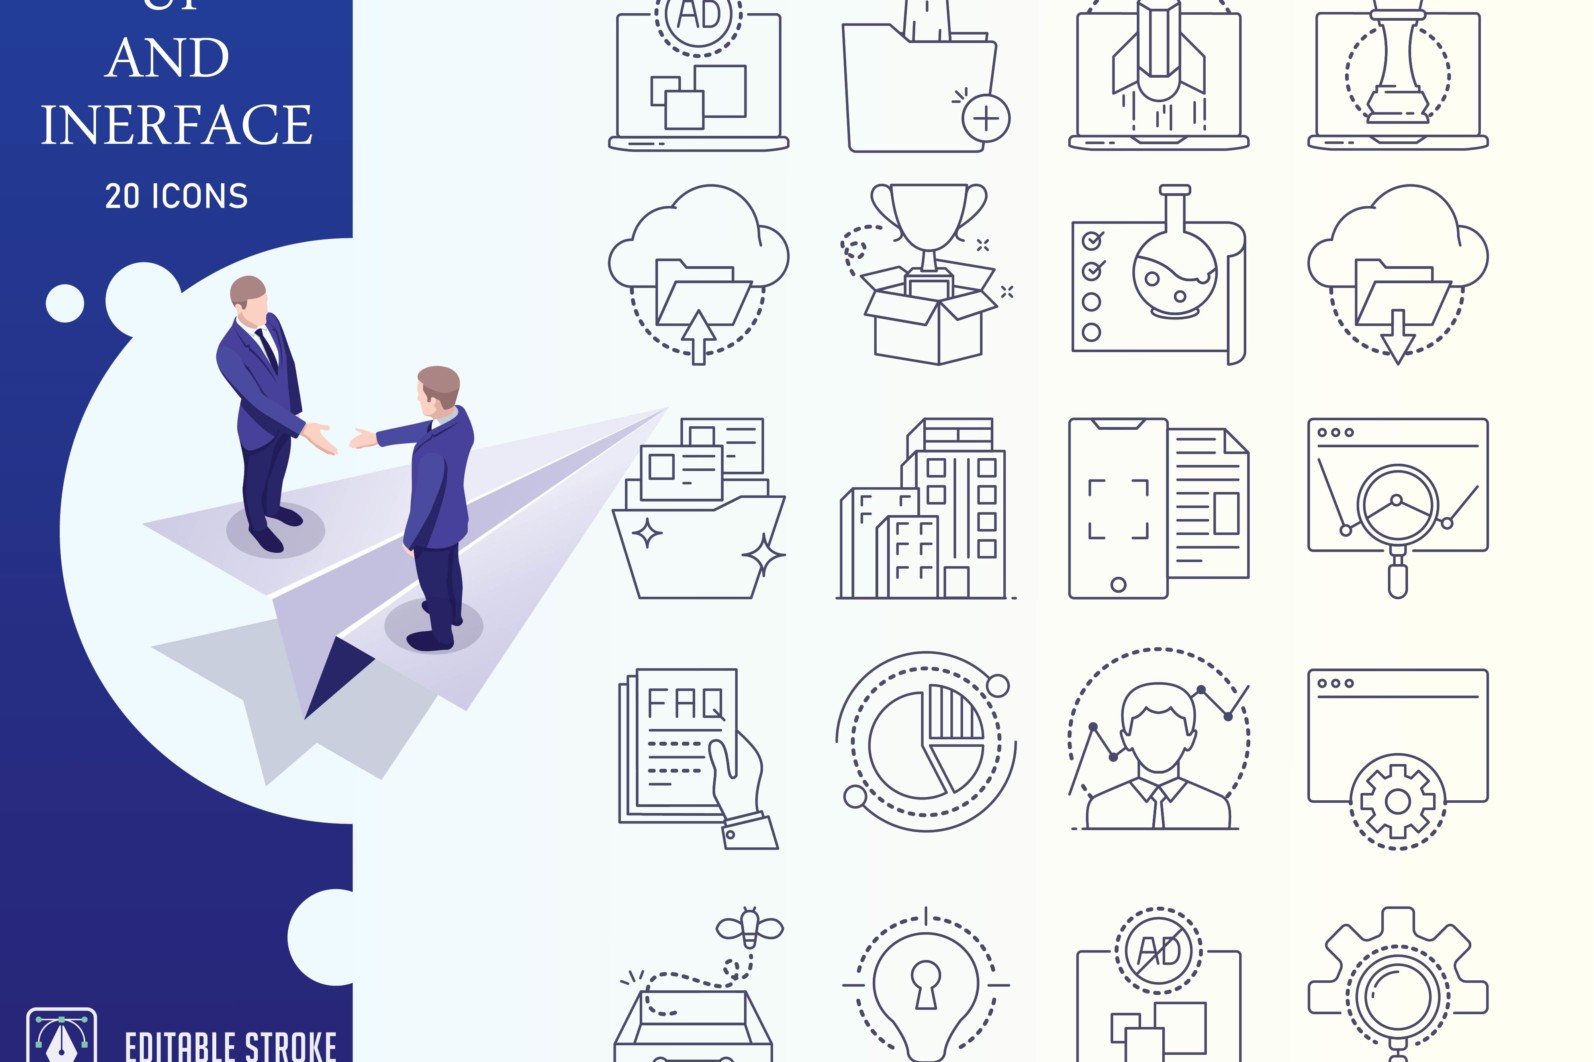 Outline : Ui And Interface Icon Set - UI Iconset outline 01 1 scaled -